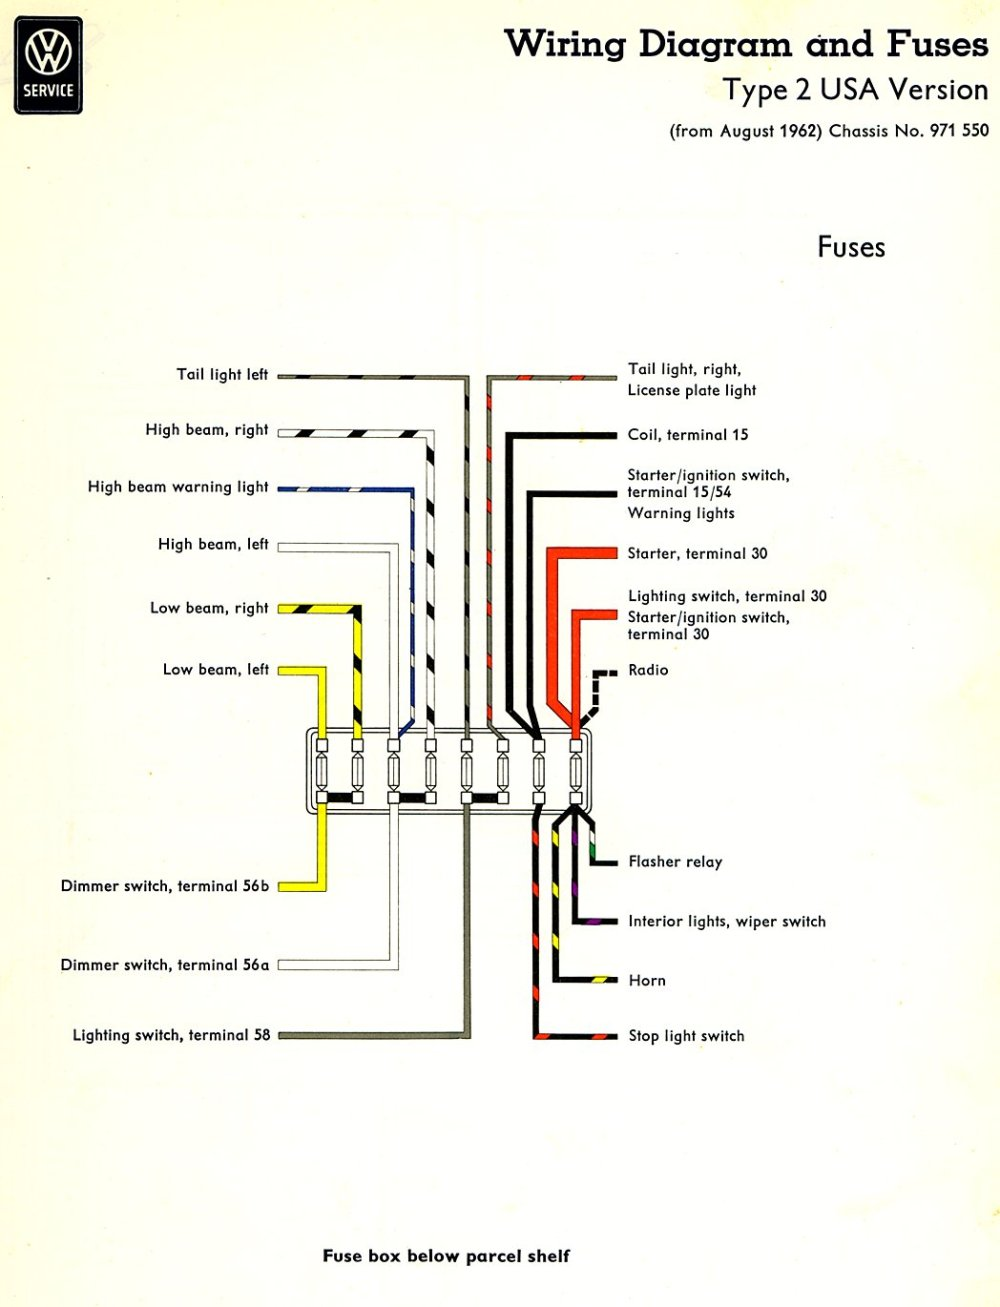 medium resolution of thesamba com type 2 wiring diagrams73 vw alternator wiring 18